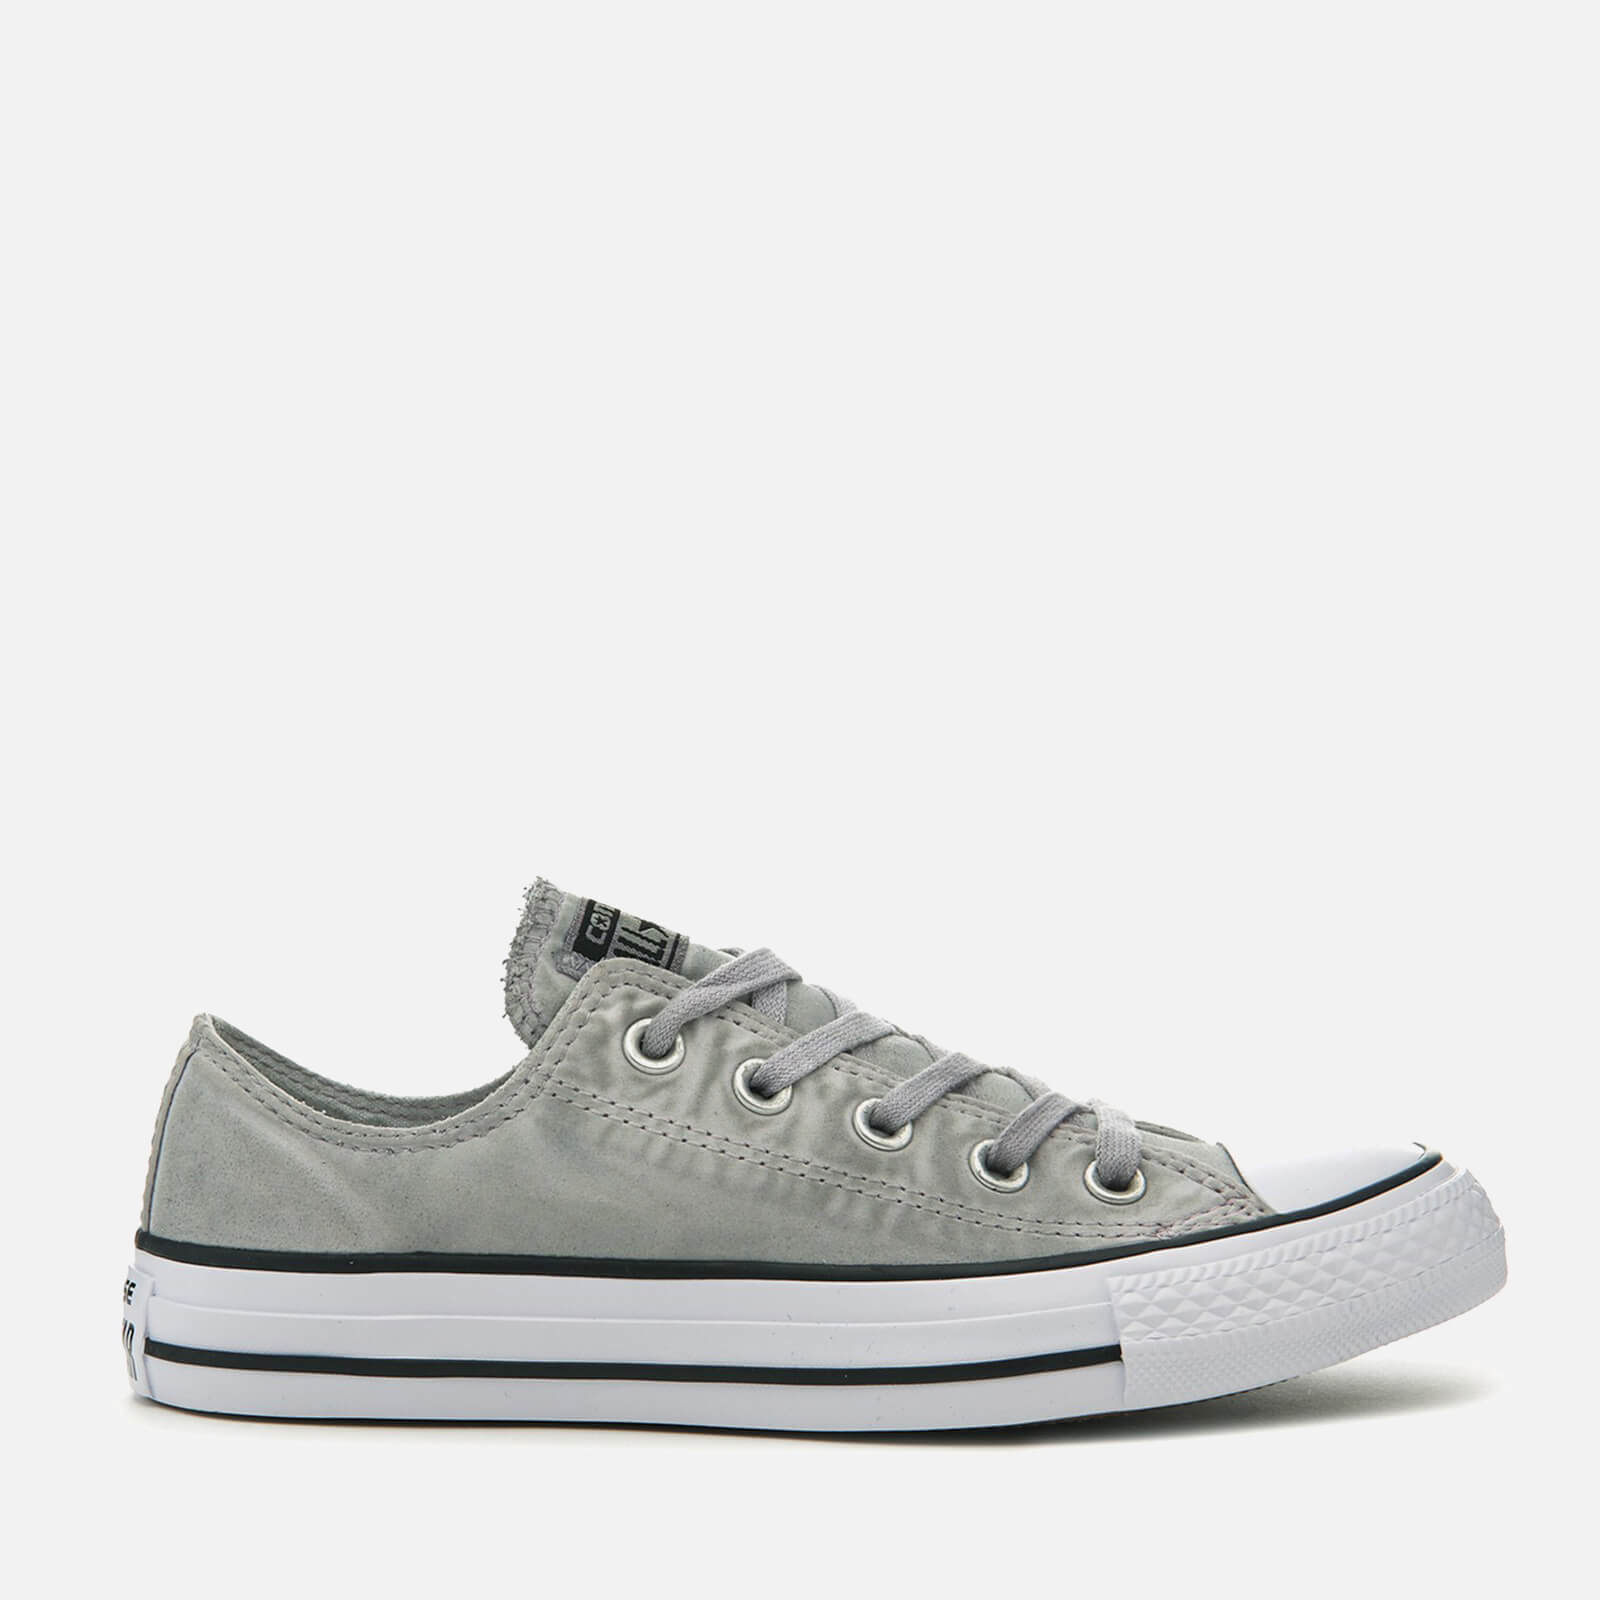 b8afc0a90bccc1 Converse Chuck Taylor All Star Ox Trainers - Dolphin Black White - Free UK  Delivery over £50